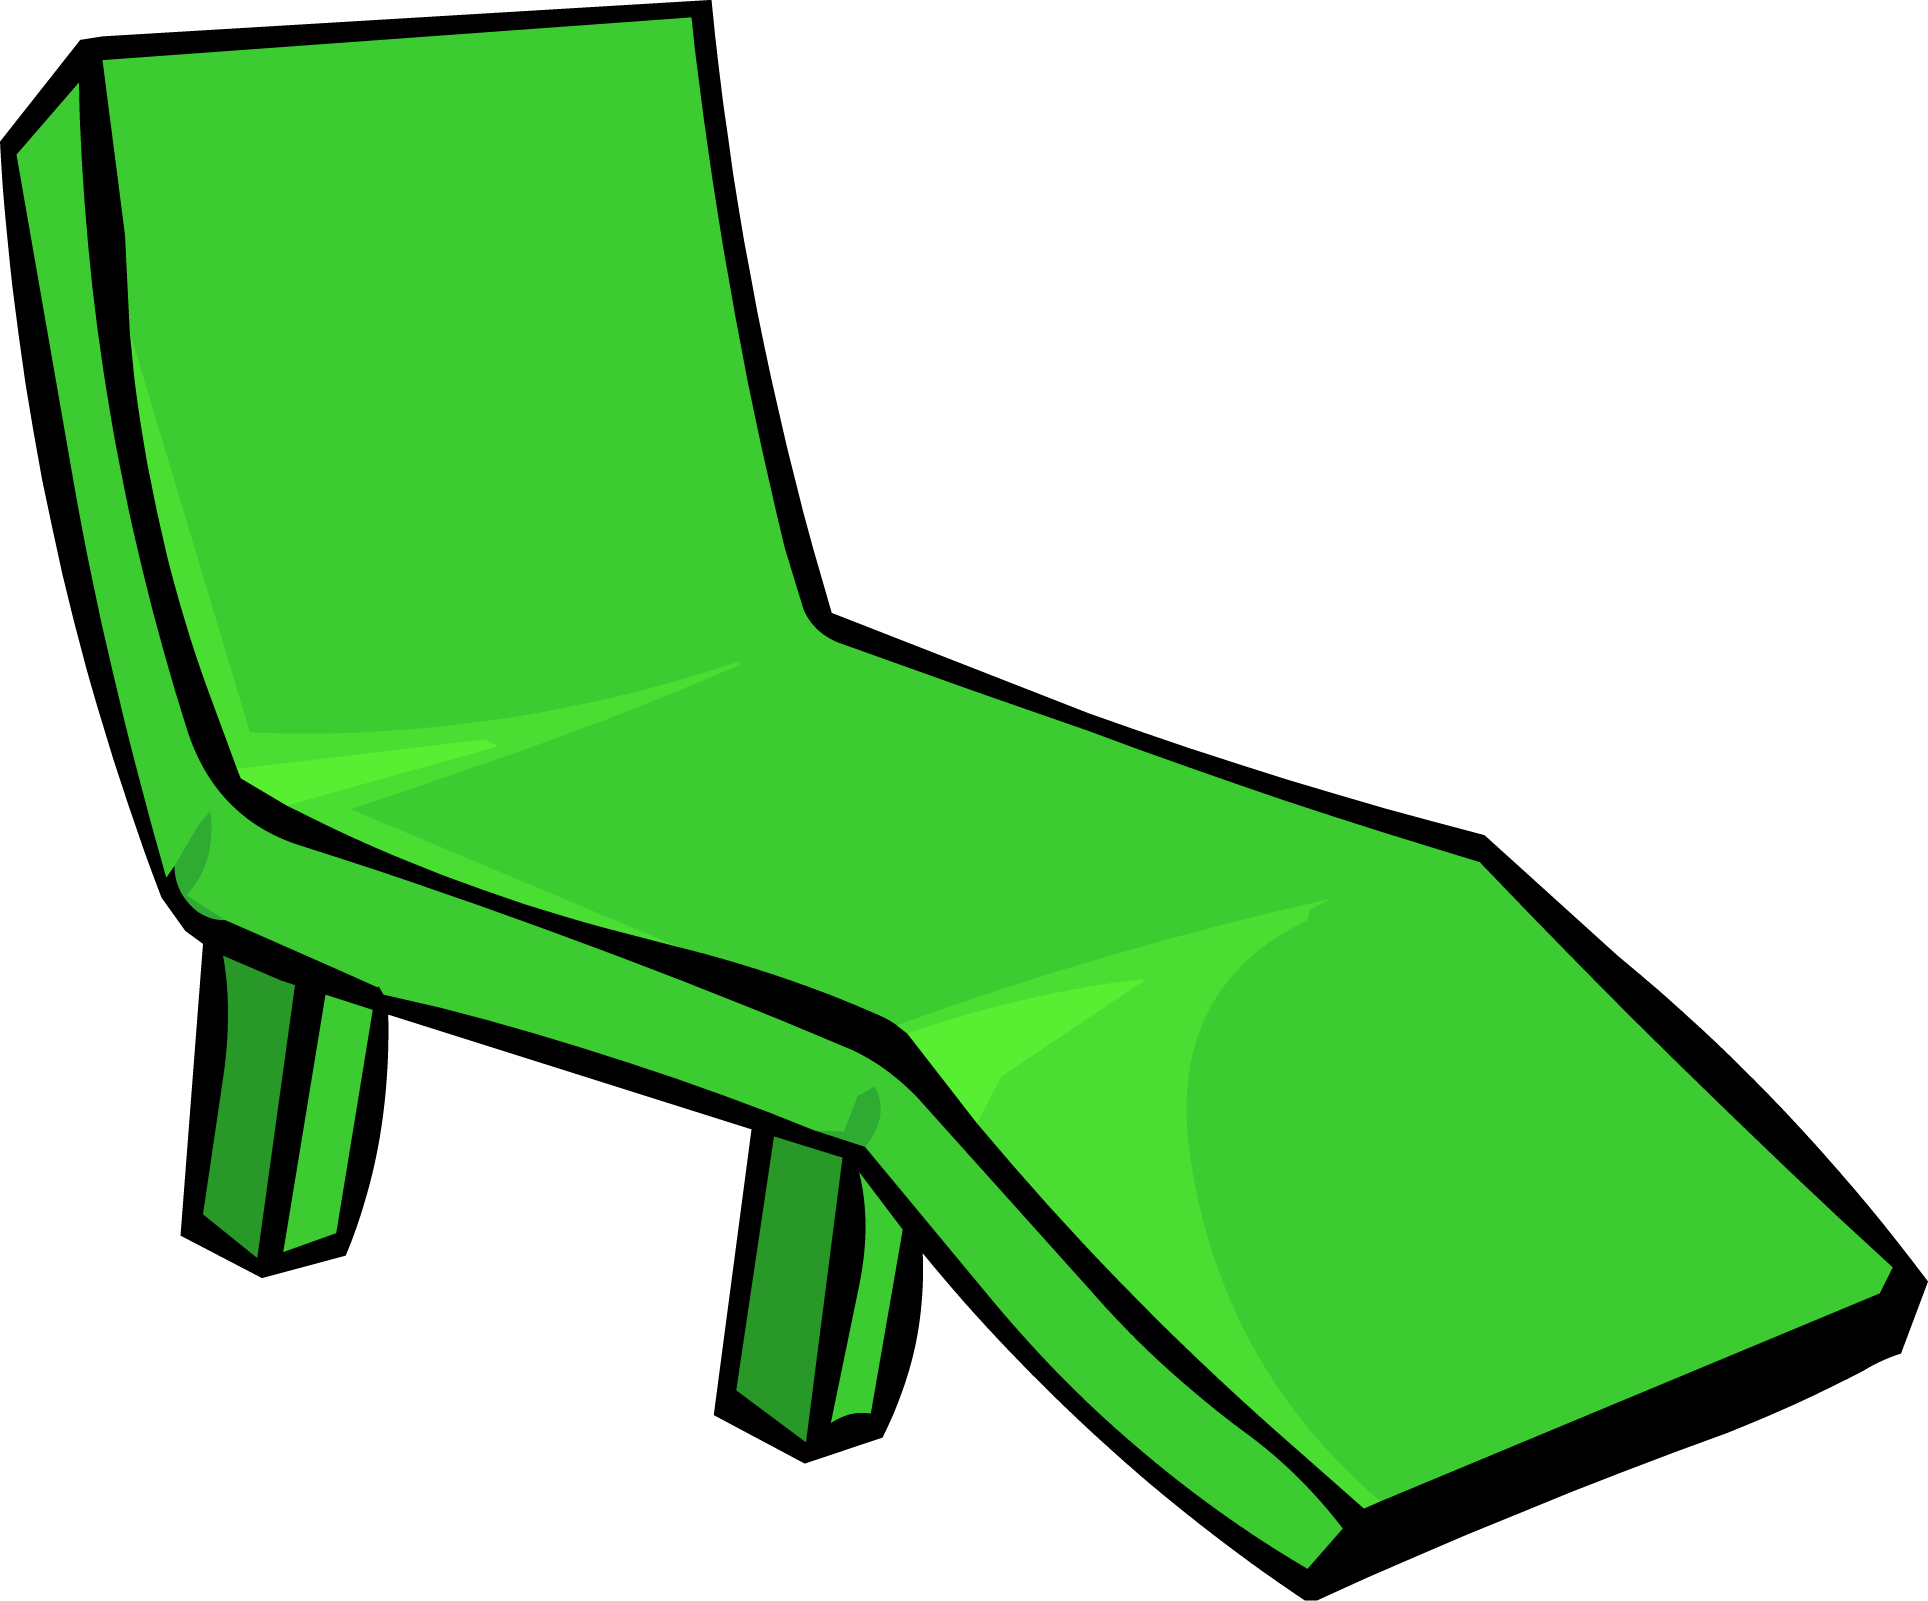 Furniture clipart lounge chair. Image green deck png